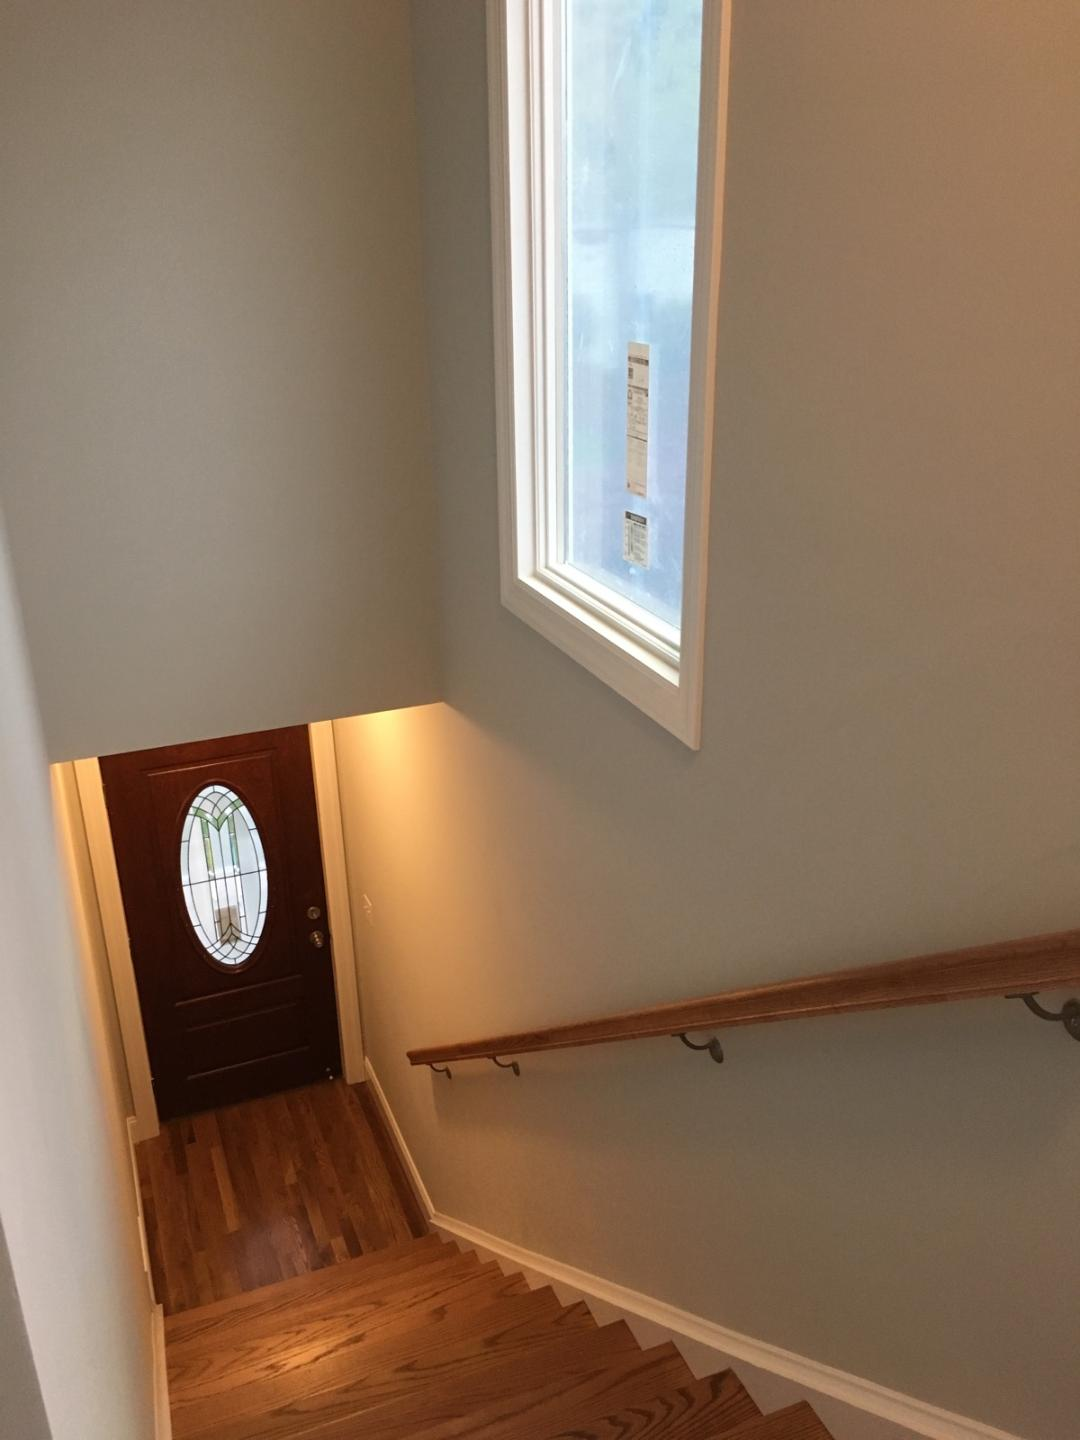 New Construction on Westerleigh! Modern, gorgeous and amle 3 br 1 baths. Hardwood floors. Granite & Tile on an open concept eat in Kitchen that features ss appliances. Look at the pictures and fall in love. Located near express and local buses, short distance to shopping areas. Staten Island Expressway. No pets